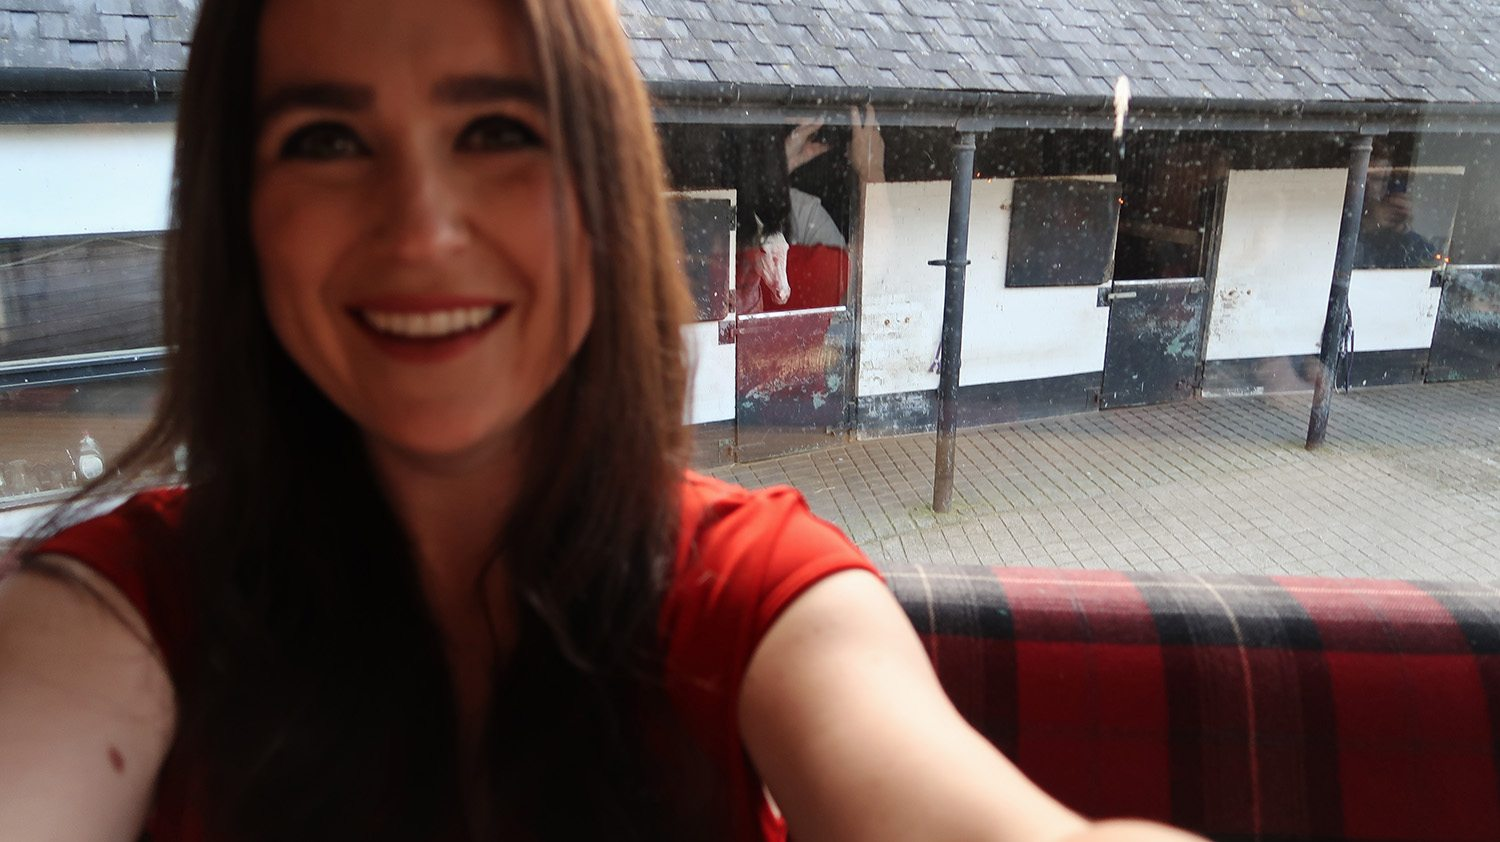 Selfie of a woman in a red top, behind her through the window you can see some stables and horse looking out of one.